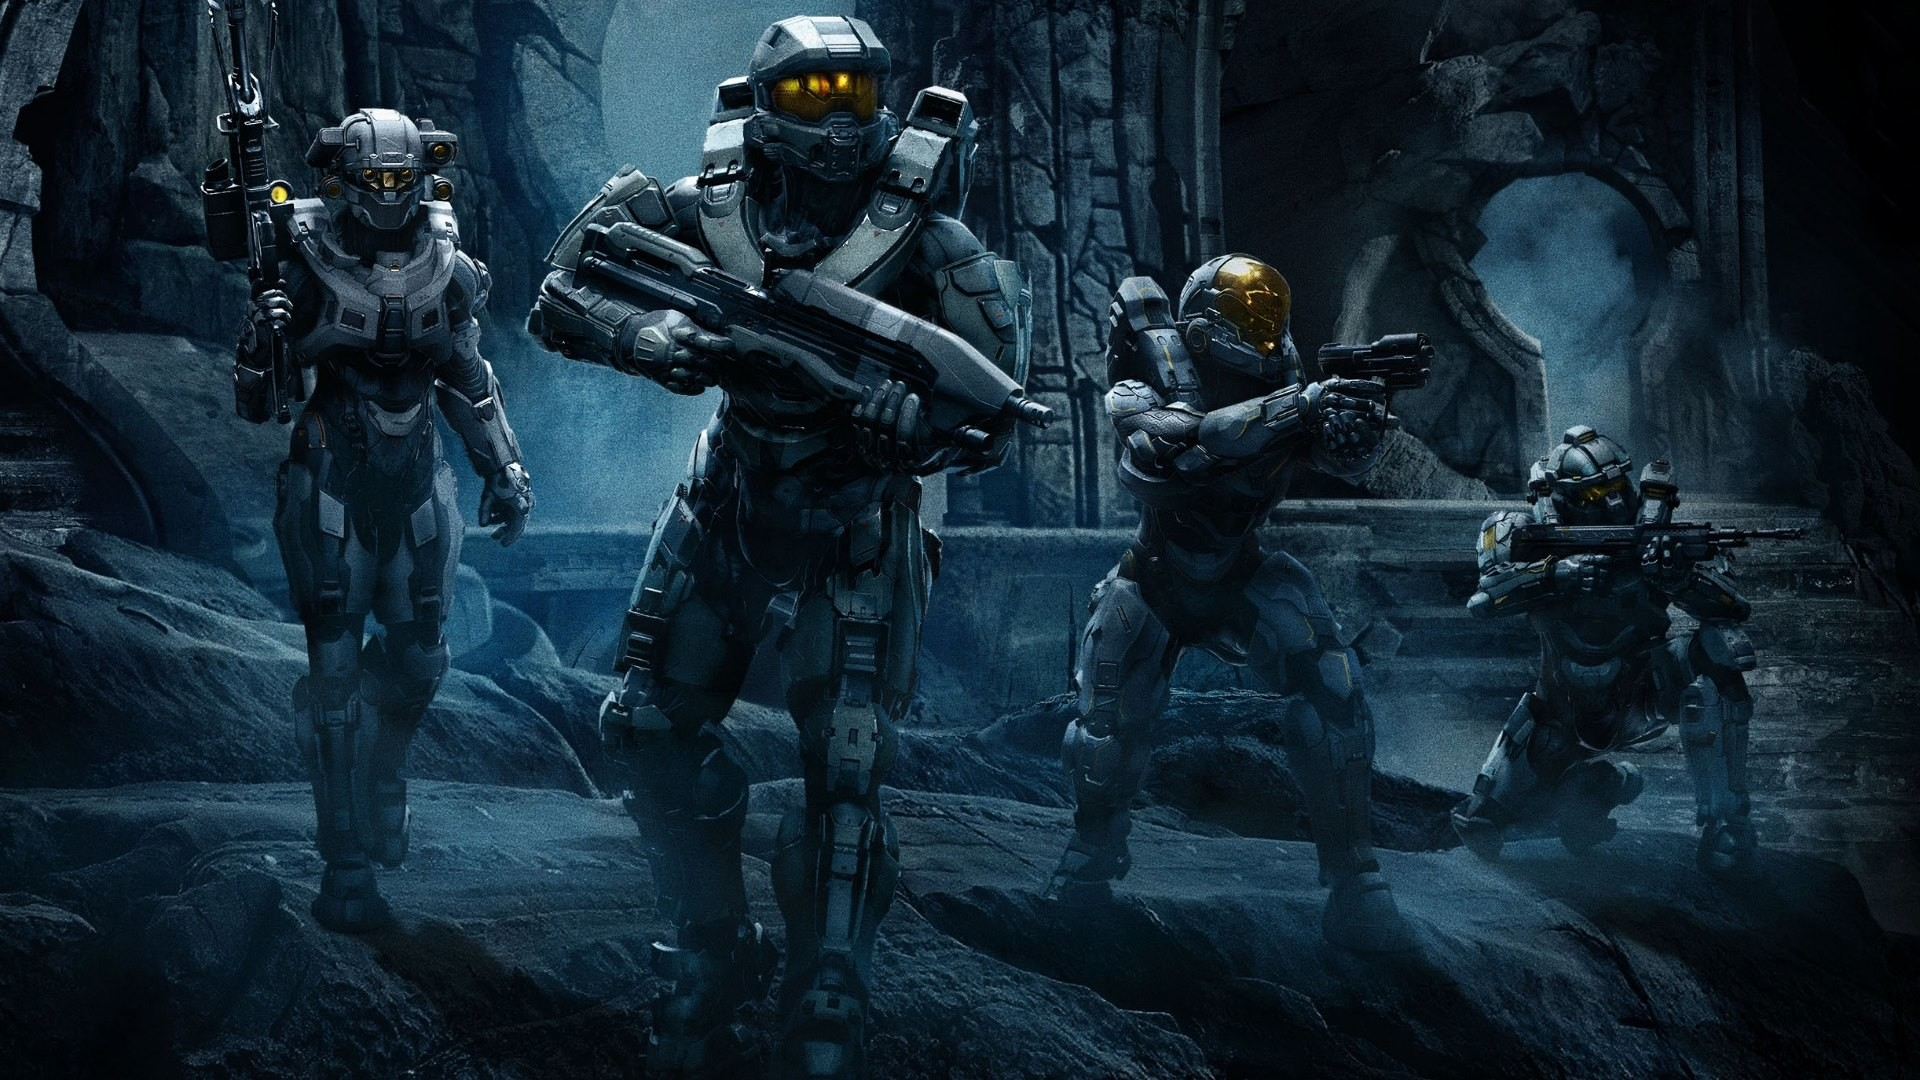 1920x1080 The 3rd wallpaper is with Halo 5 Guardians Team Chief